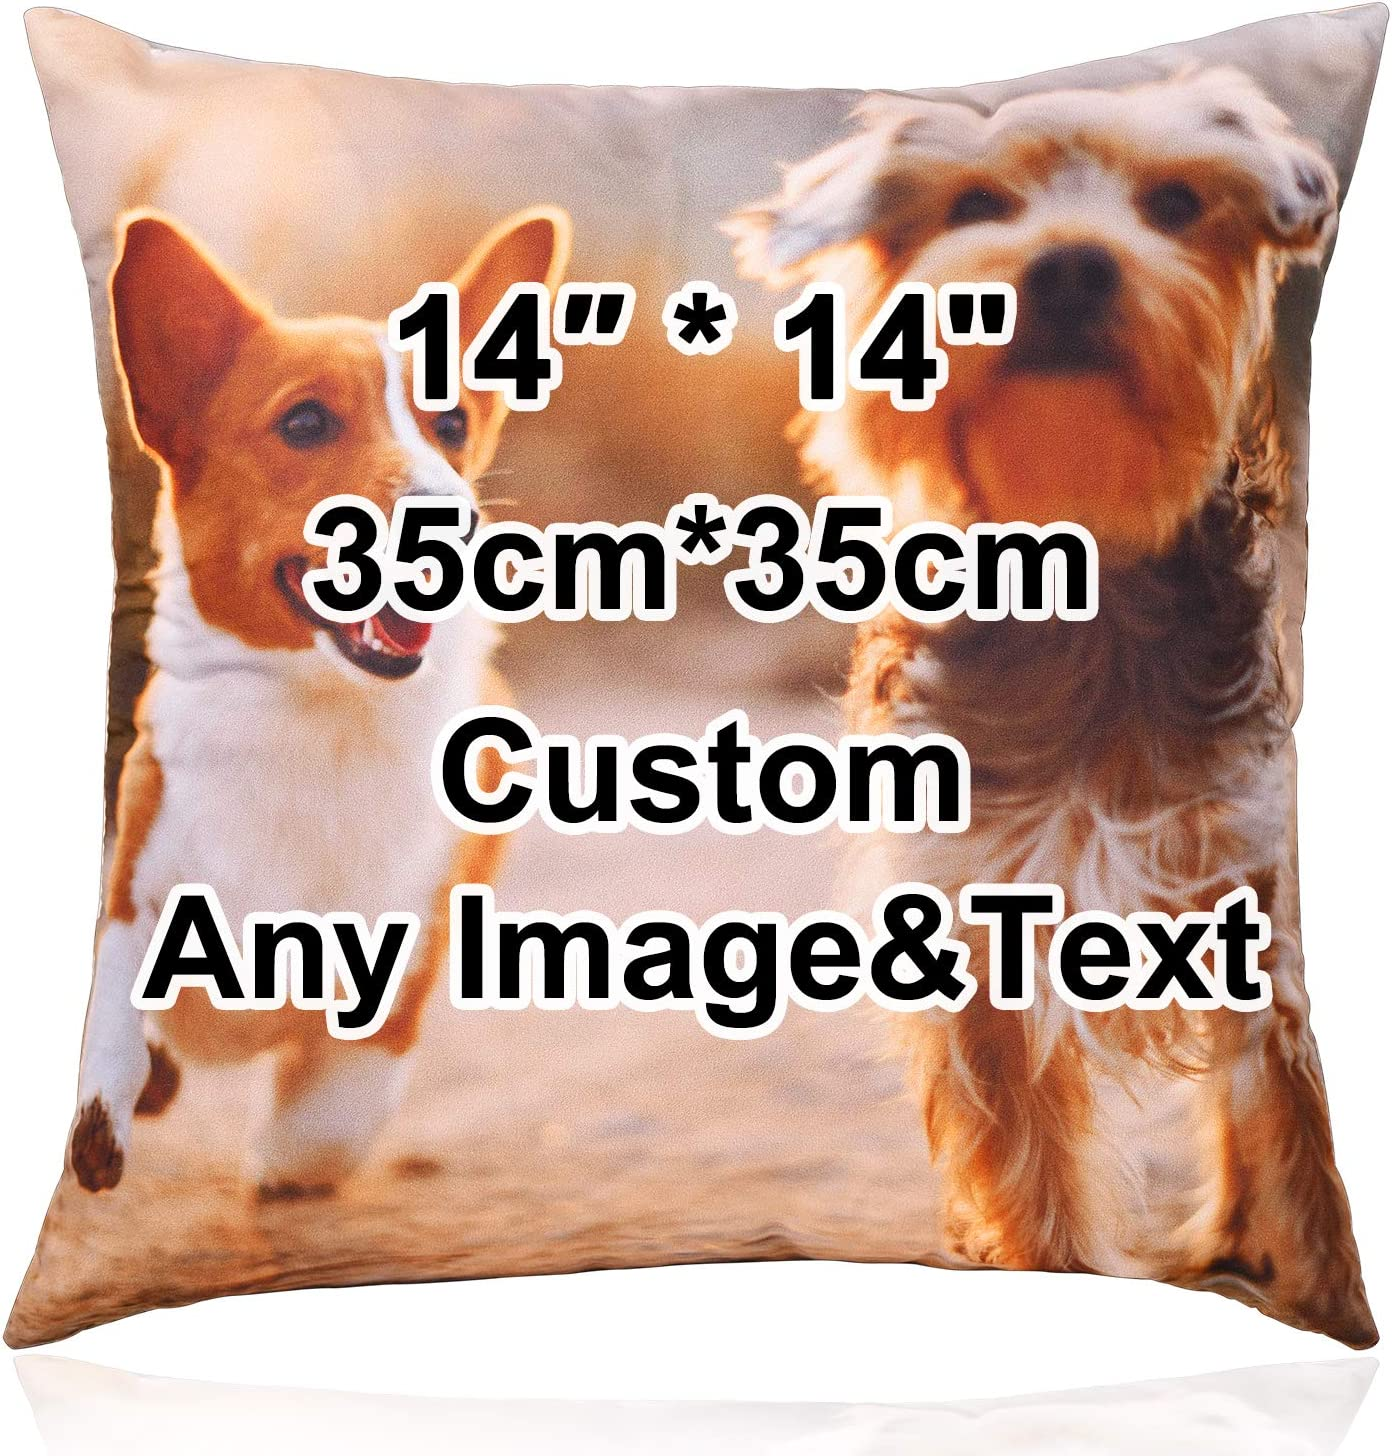 Custom4U Personalized Photo Throw Pillow Cases Bedroom Accessories Custom Any Image Cushion Cover Customizable Home Decor DIY Graphic Pillow Case for Housewife